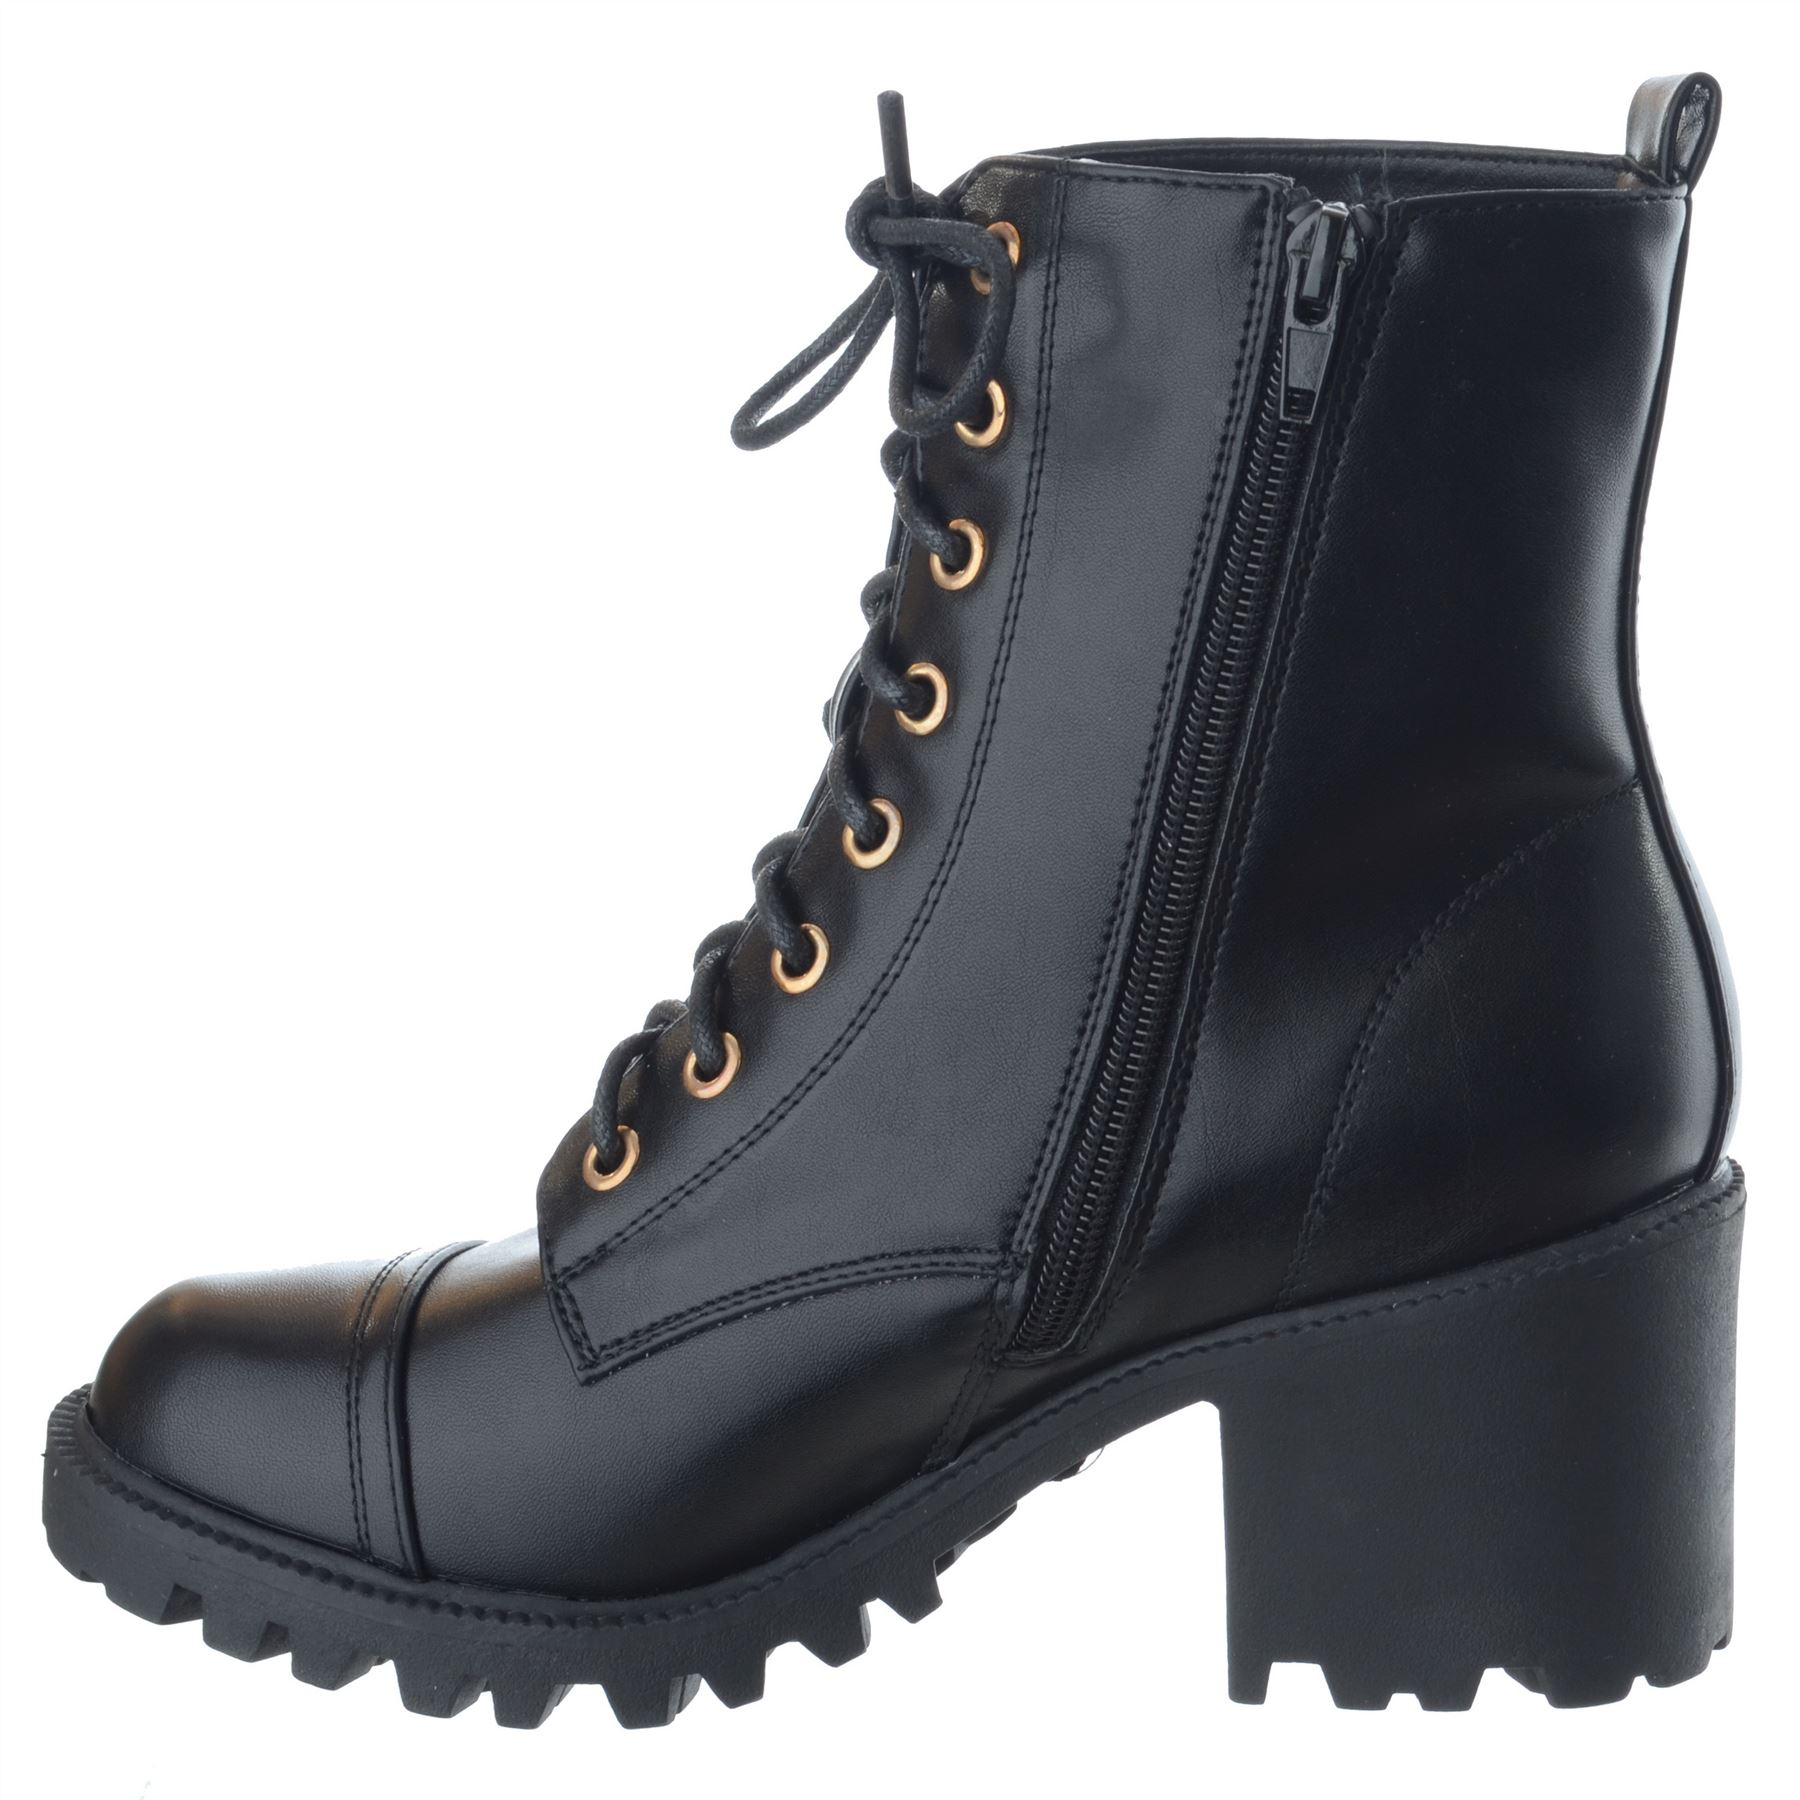 Noir Chunky Mid Cuir Lace Bottines Taille Combat Up Block Chaussures En Womens Militaire Talon Zip q7aw1xBBY